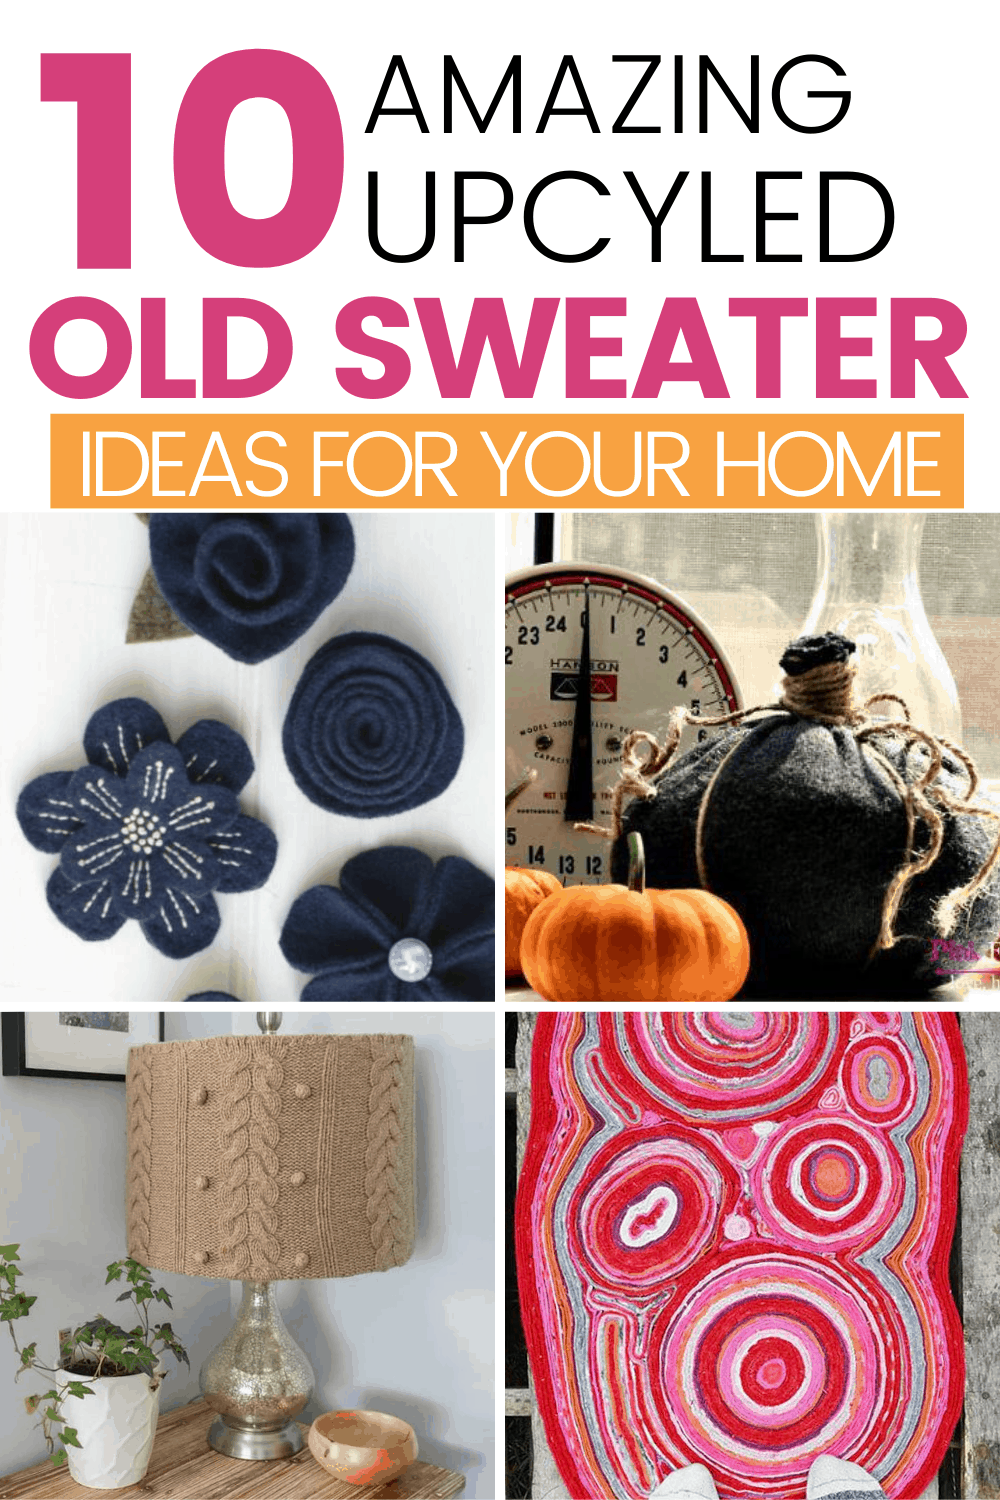 upcycled sweater home decor ideas